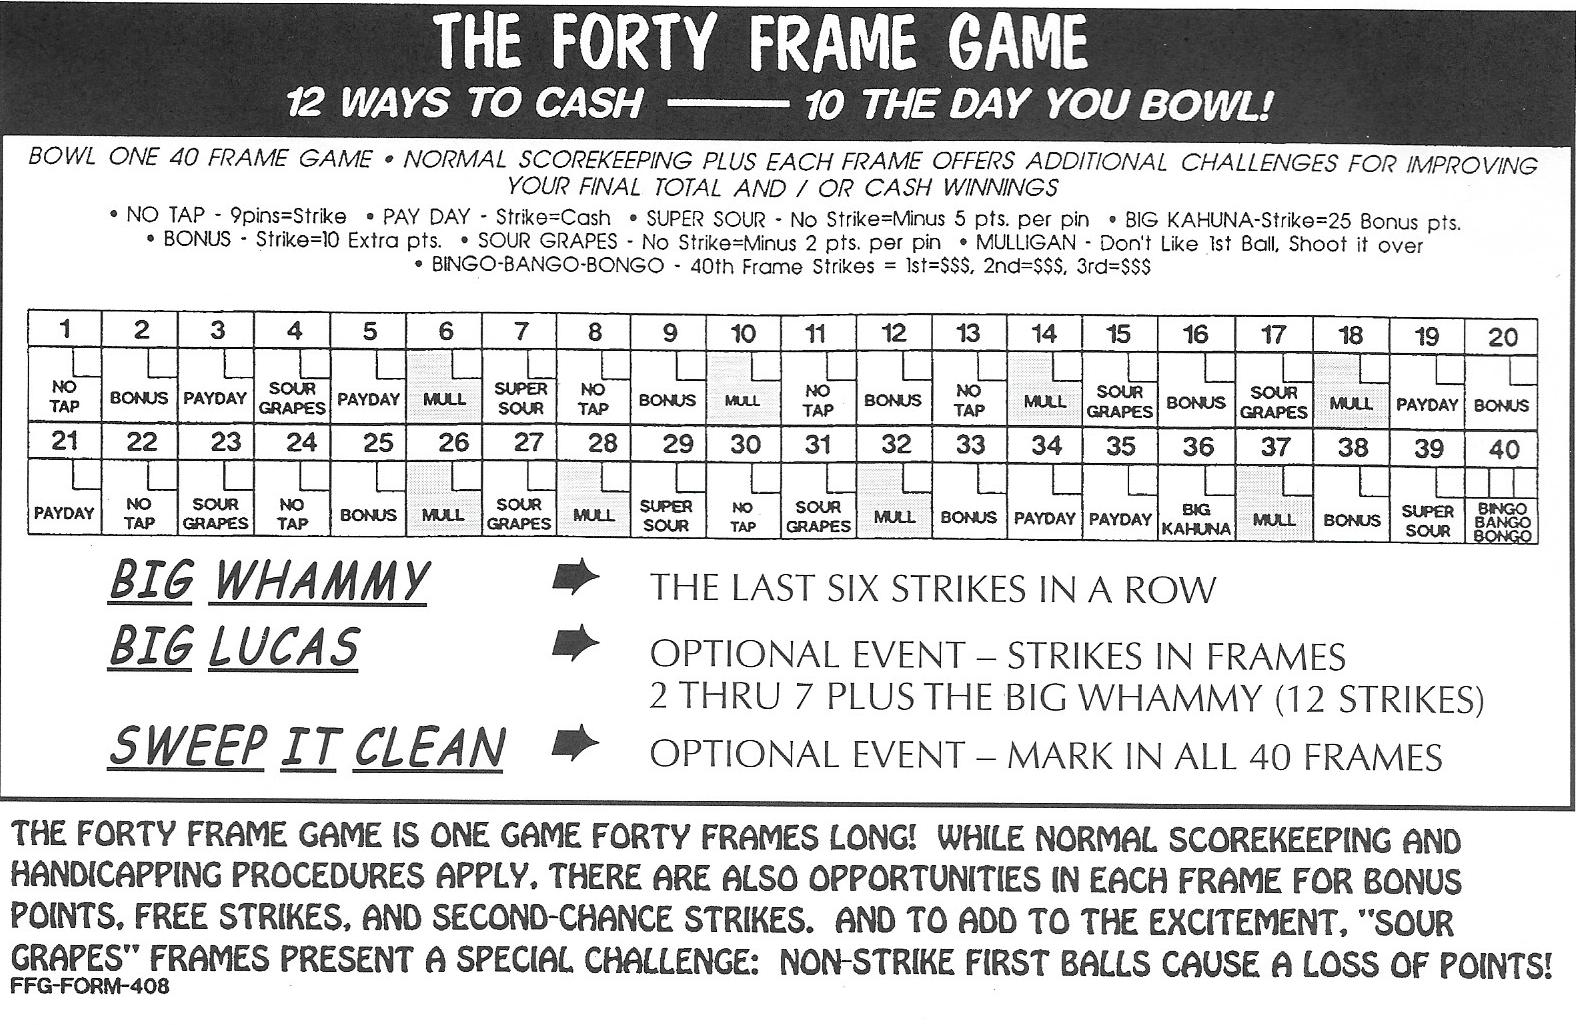 The Forty Frame Game Is The Worlds Most Unusual Bowling Tournament